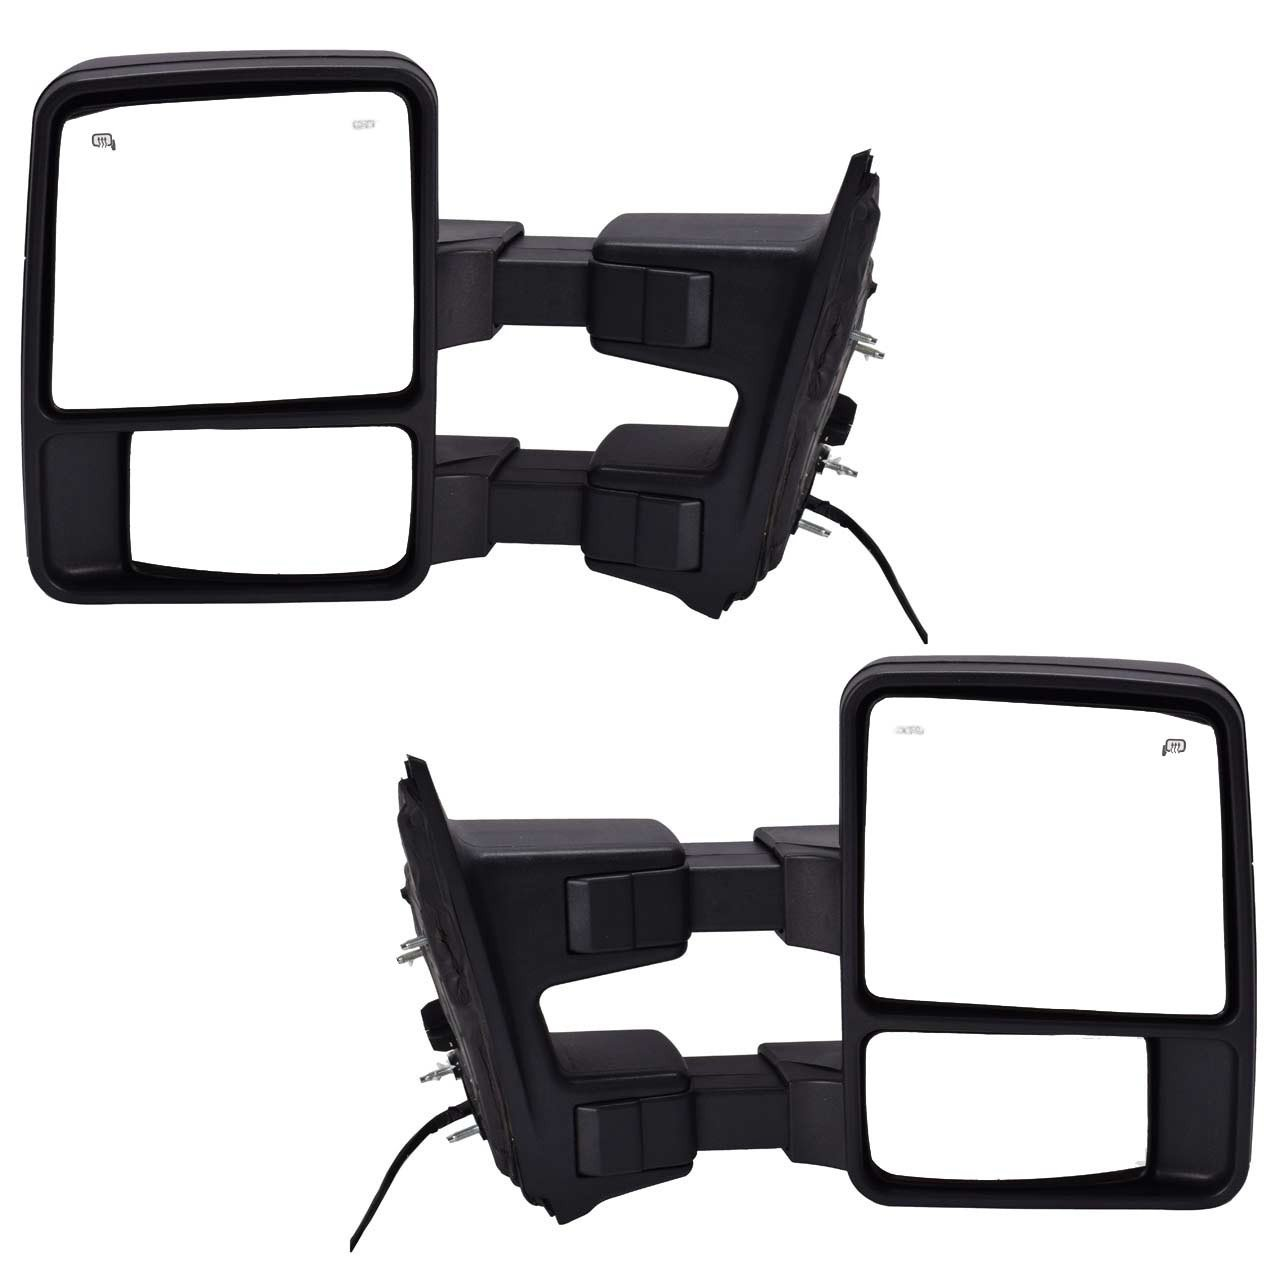 Dedc Pair 08 15 Ford Super Duty F250 F350 F450 Power West Coast Heated Mirror Wiring Diagrams With Signal Light Towing Mirrors 2008 2009 2010 2011 2012 2013 2014 2015 Automotive